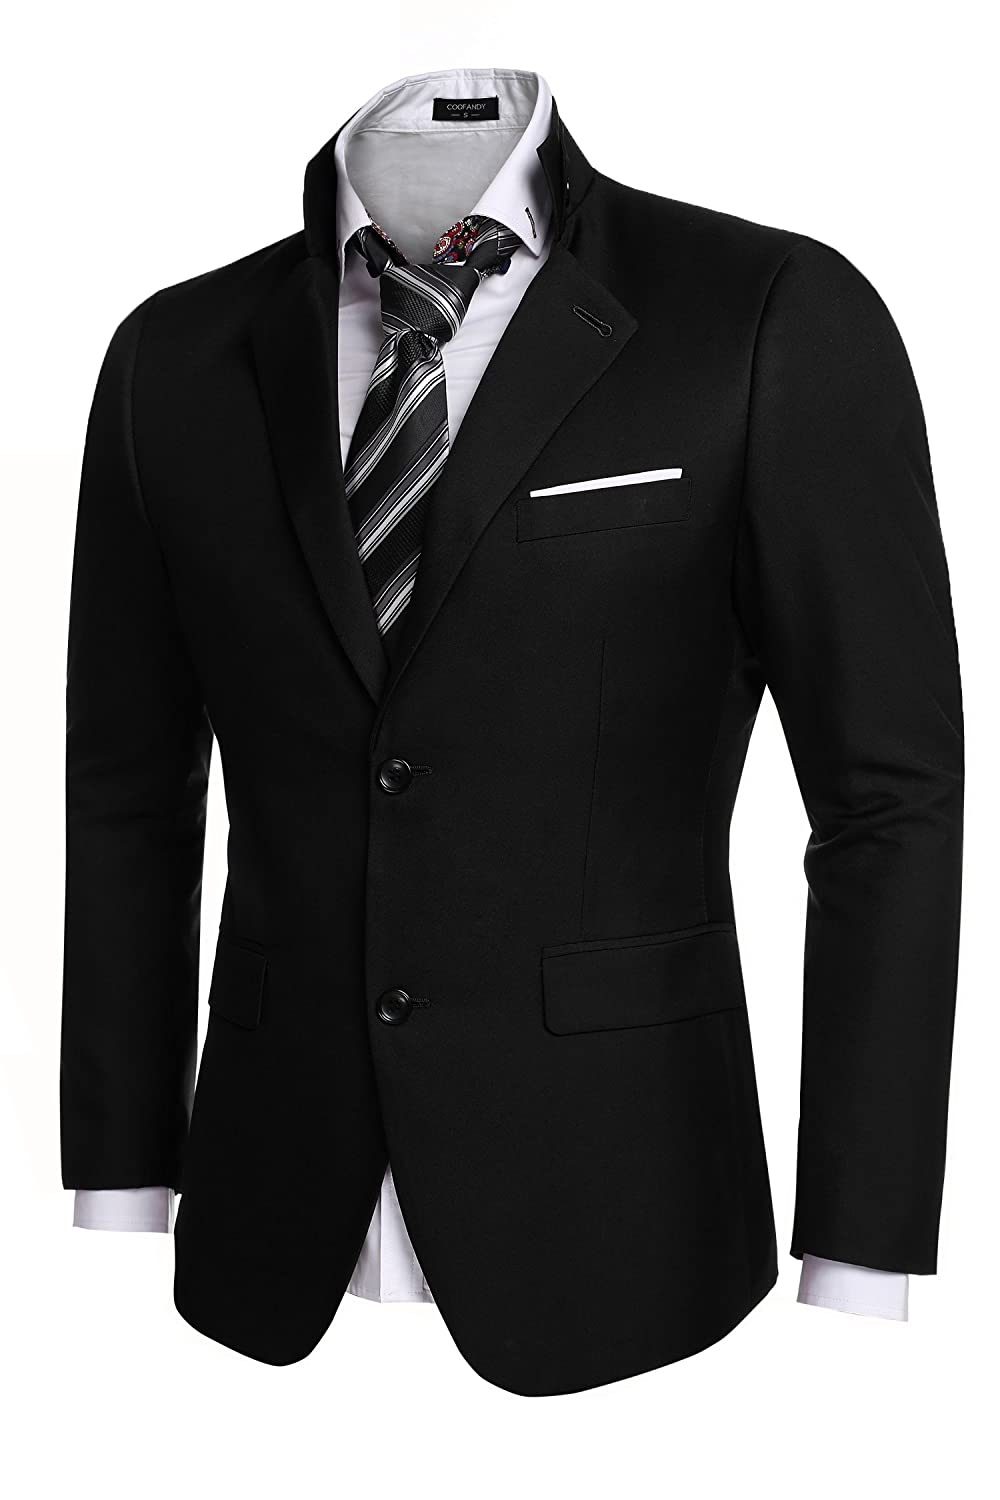 Coofandy Men's Casual Dress Suit Slim Fit Stylish Blazer Coats ...